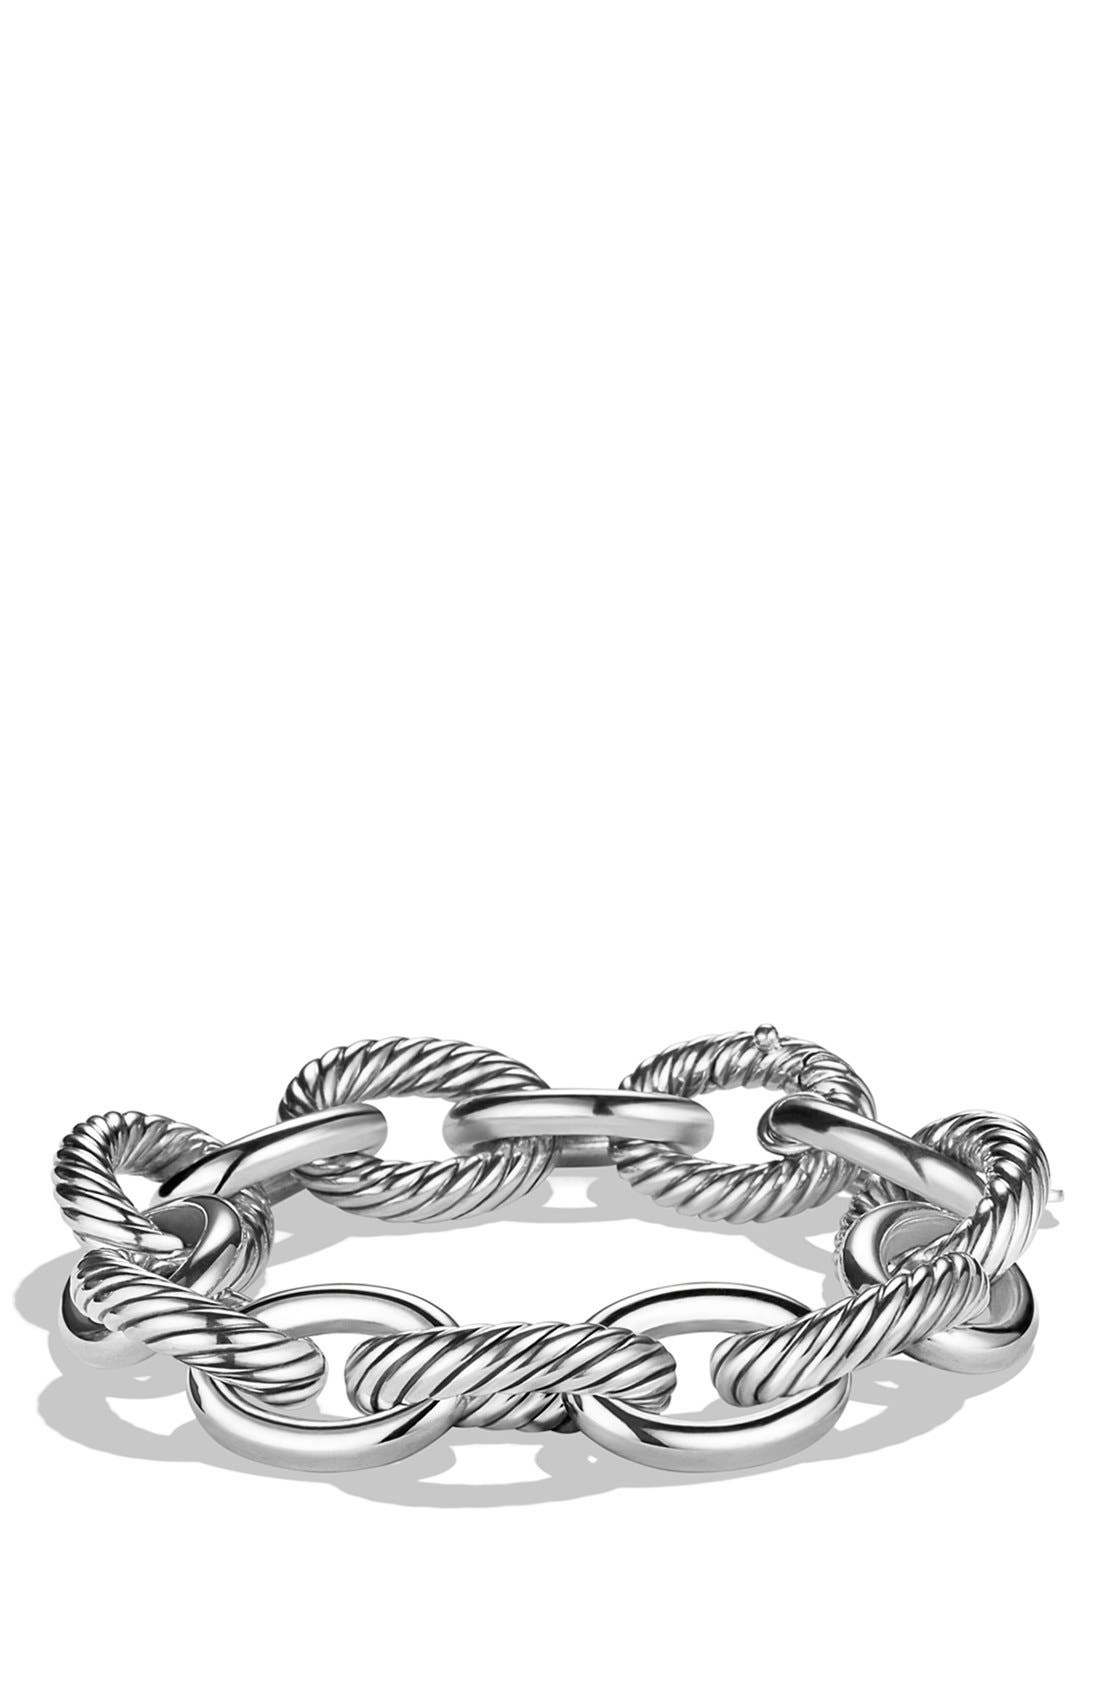 Main Image - David Yurman 'Oval' Extra Large Link Bracelet